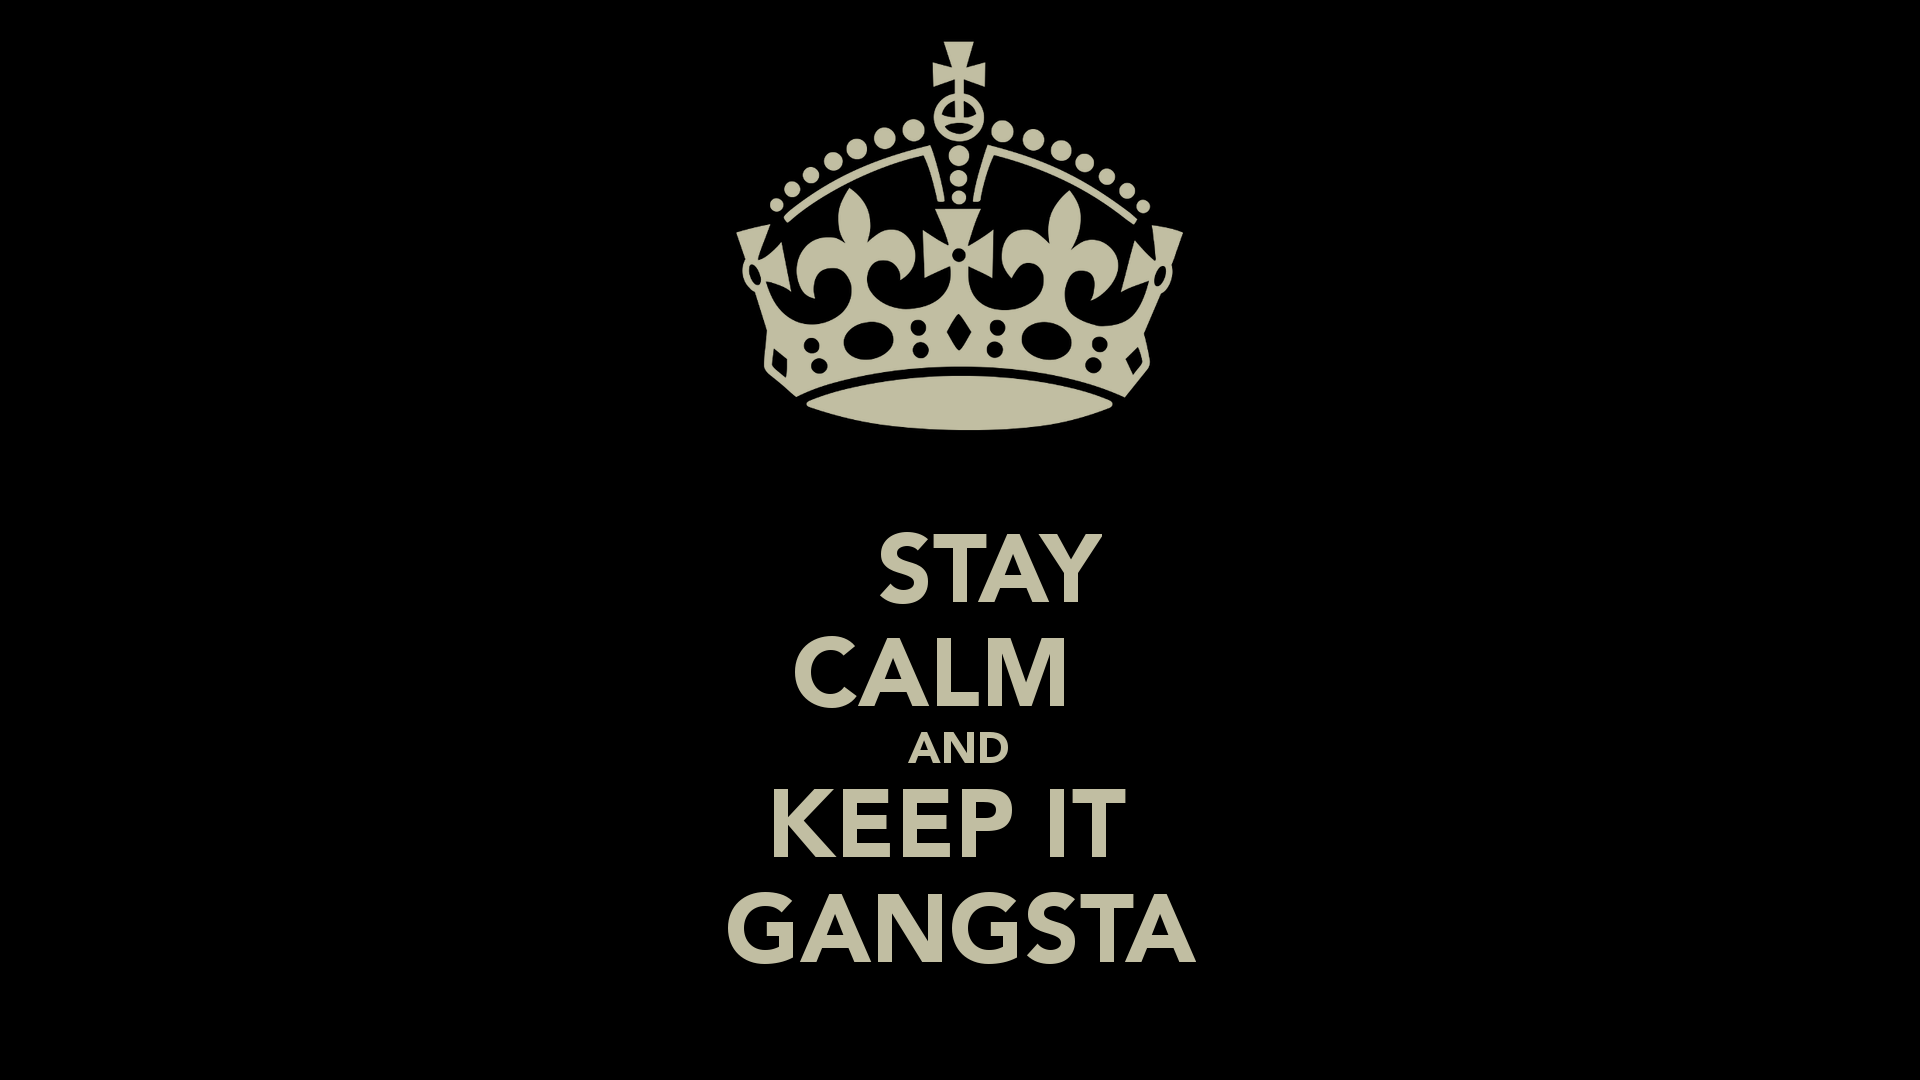 gangsters wallpapers hd - photo #41